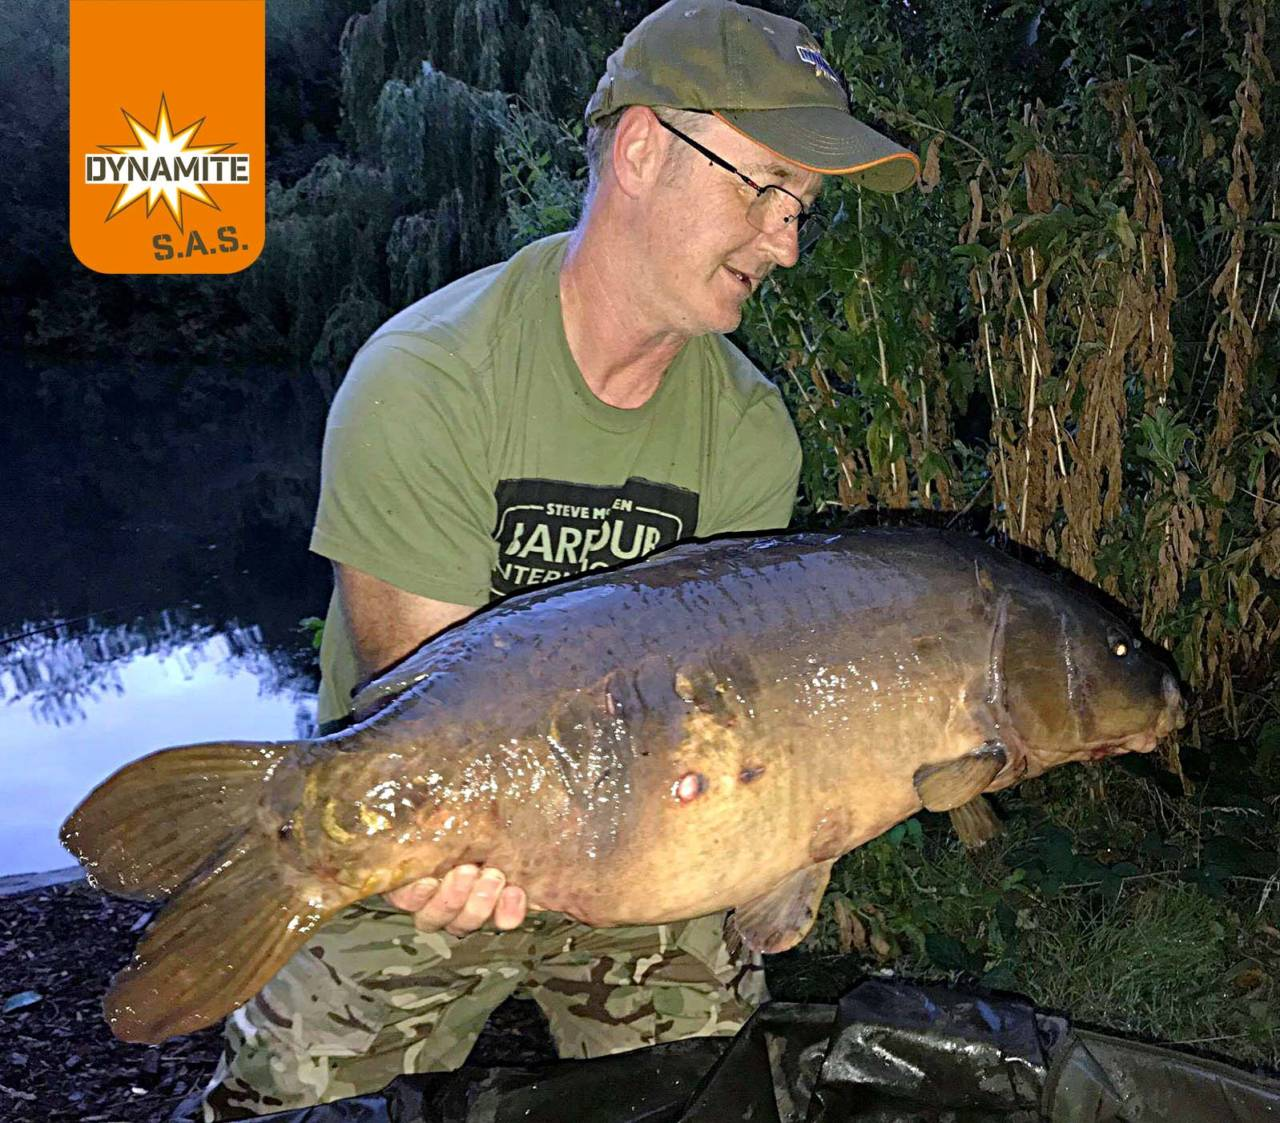 2nd place july sas swan lake 32lb carp